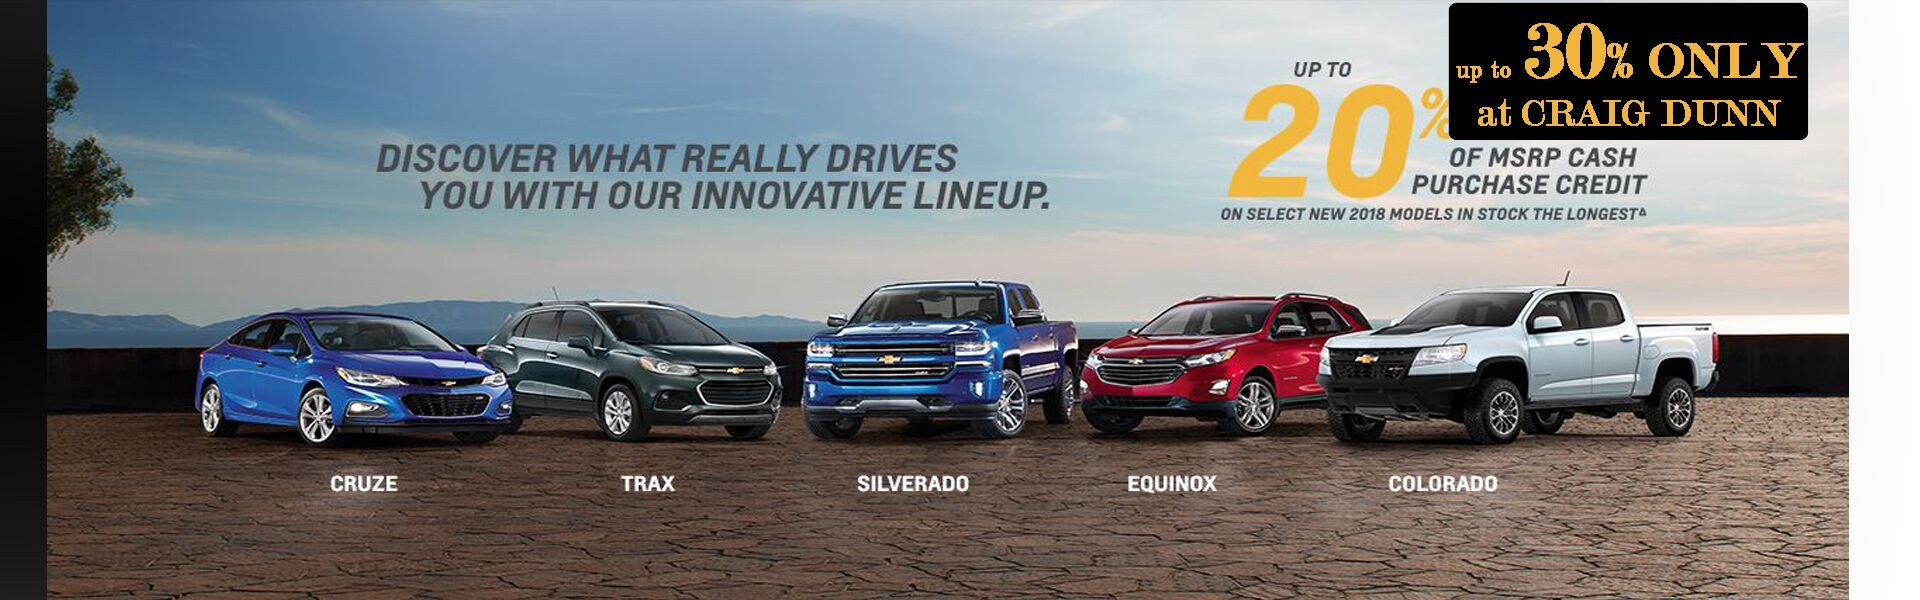 CHEVROLET UP TO 30% OFF MSRP